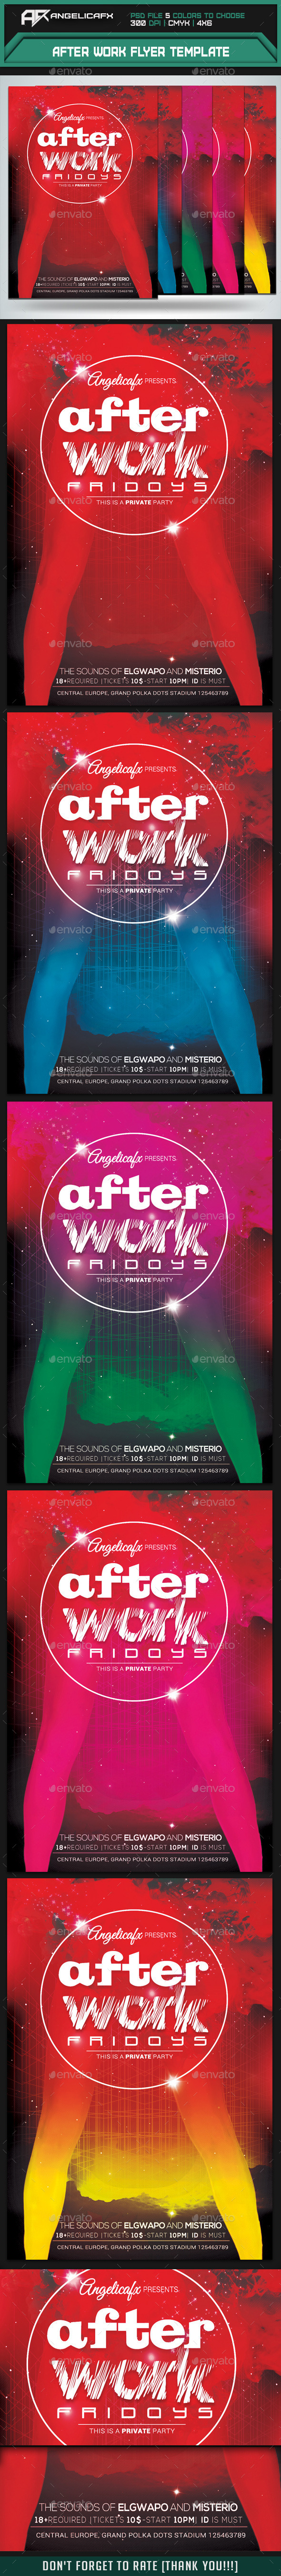 After Work Flyer Template - Flyers Print Templates